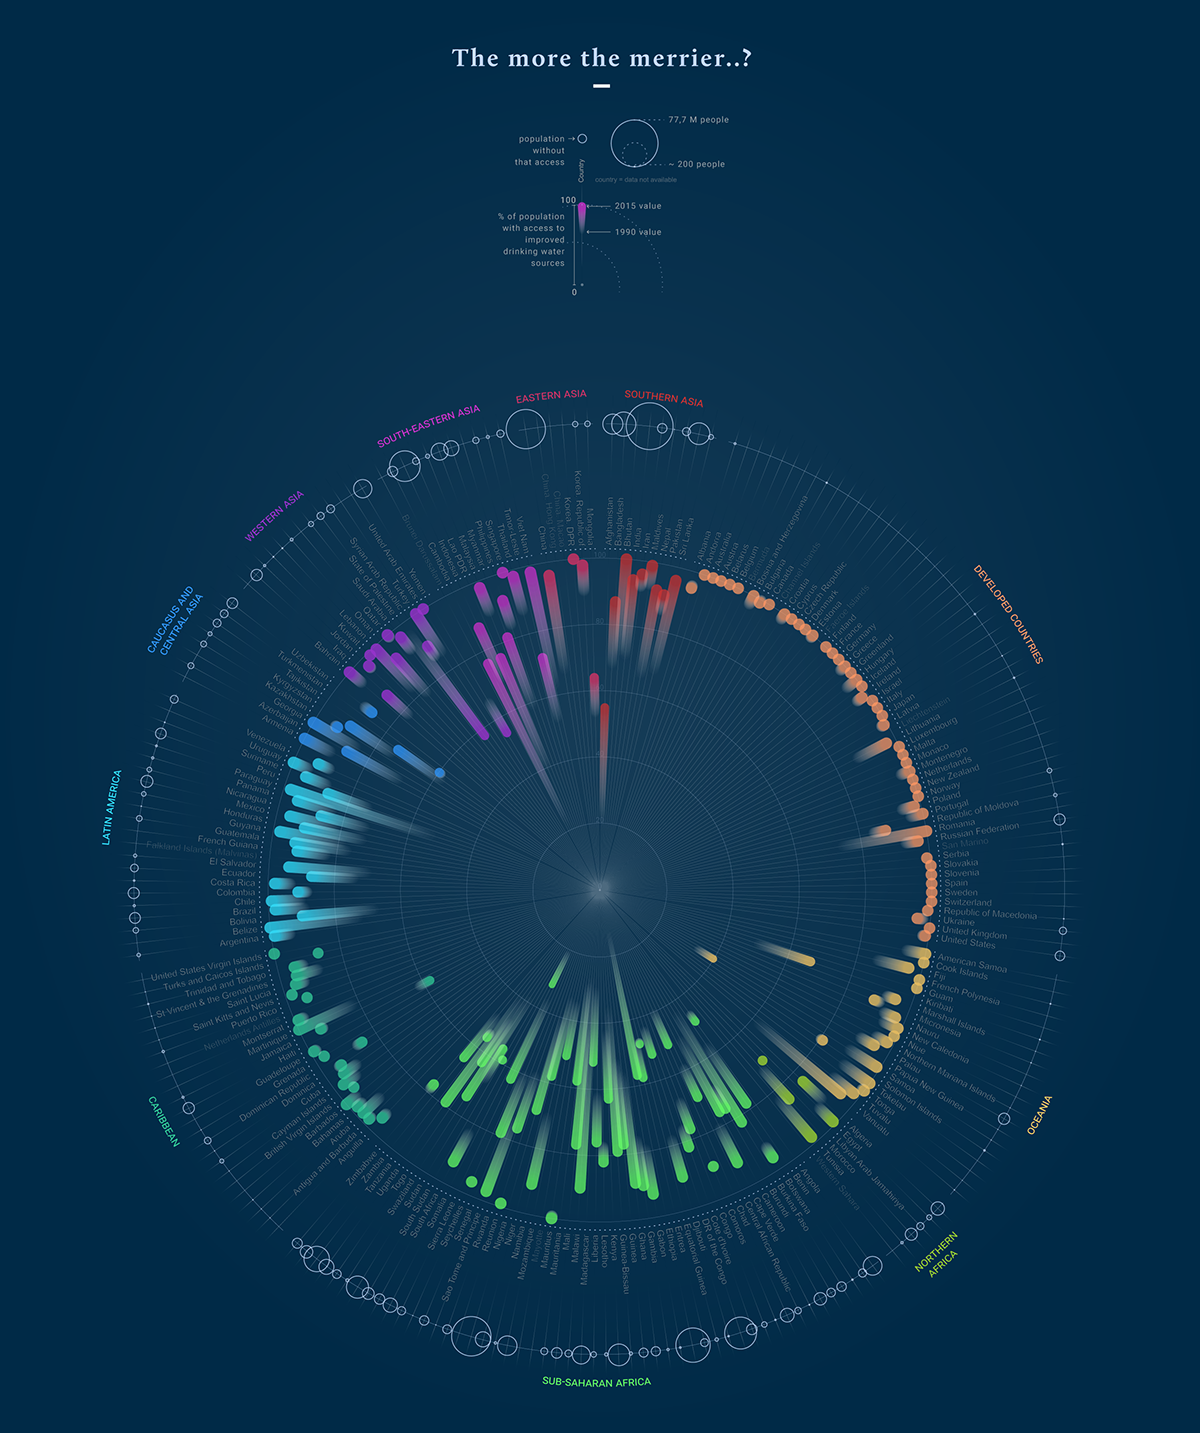 Changes in access of safe drinking water sources #dataviz for #wsd2015 challenge | Stefania Guerra #infovis